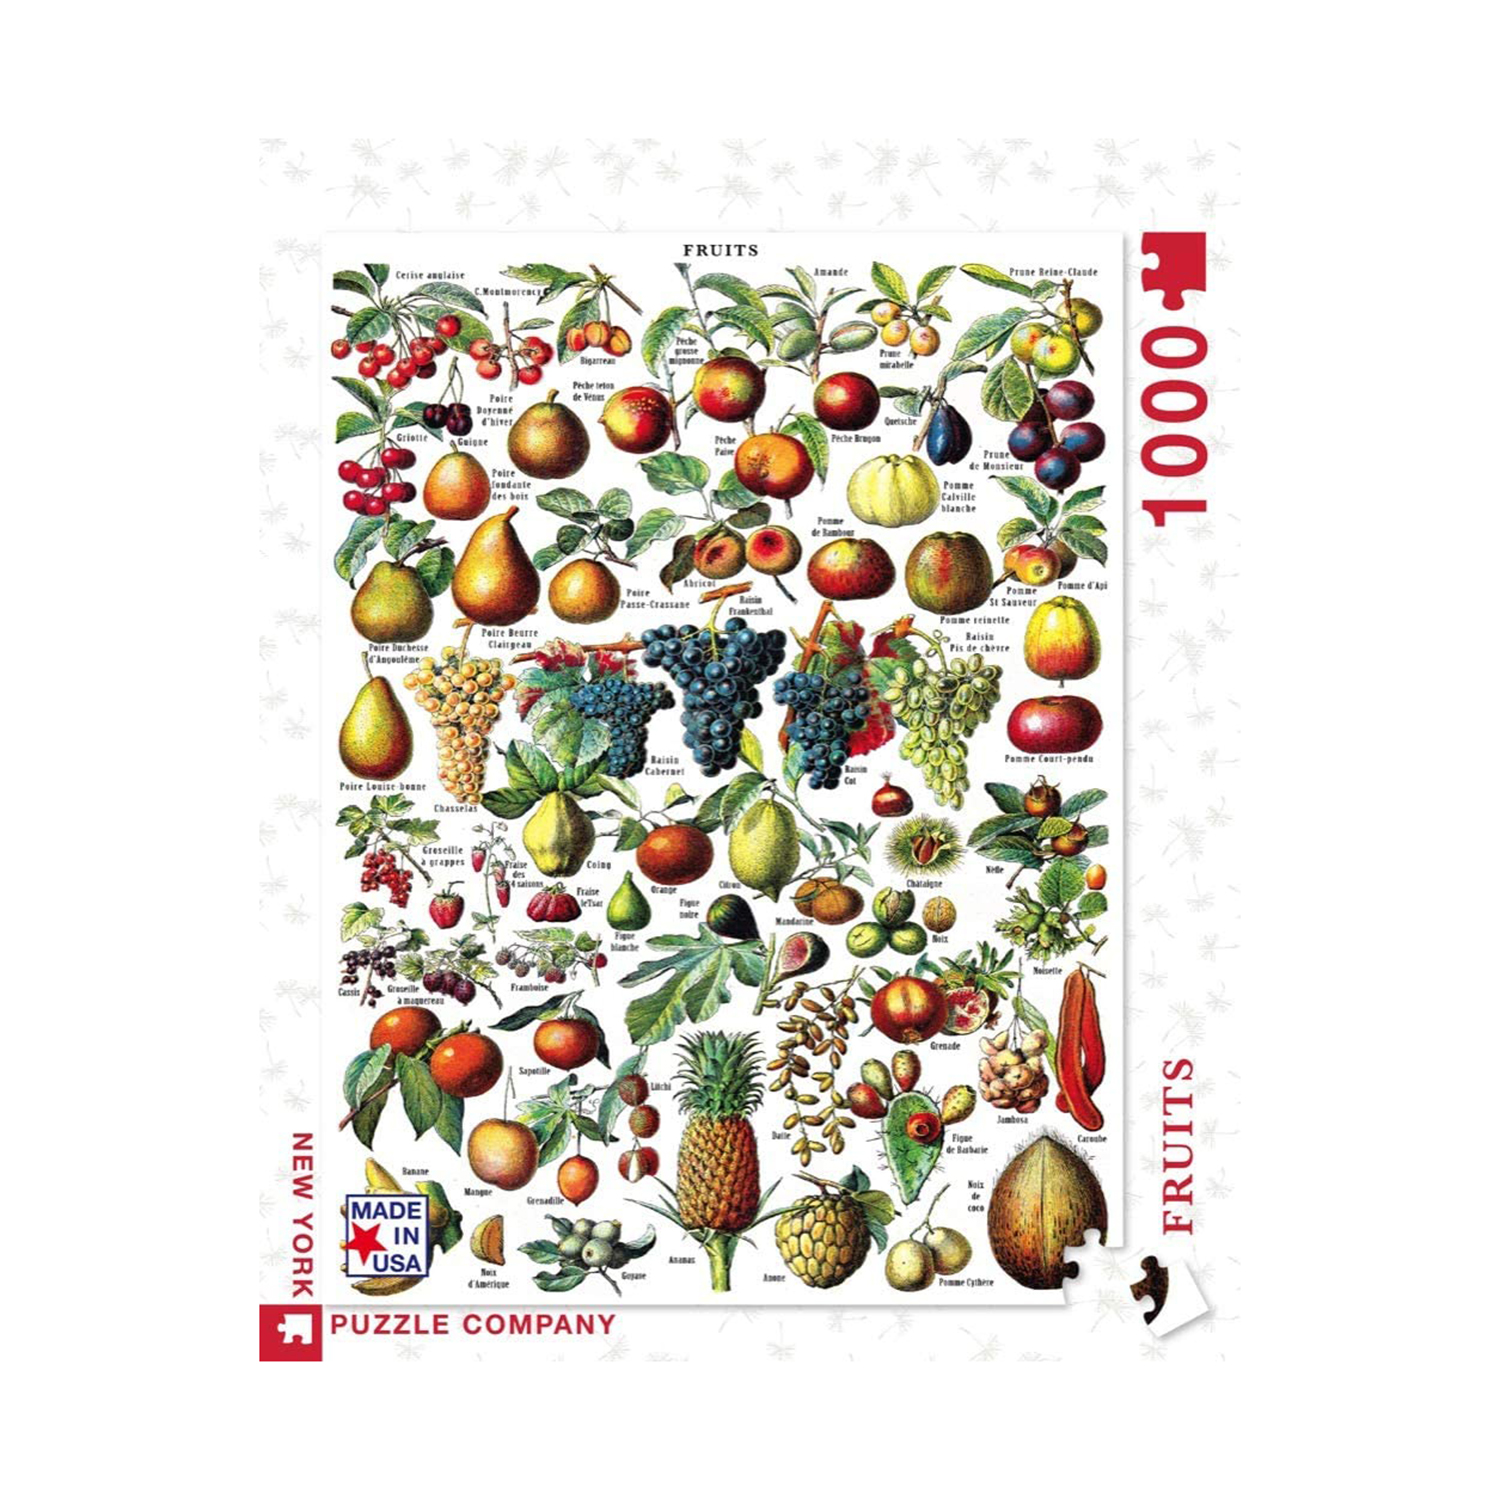 New York Puzzle Company - Vintage Images Fruits